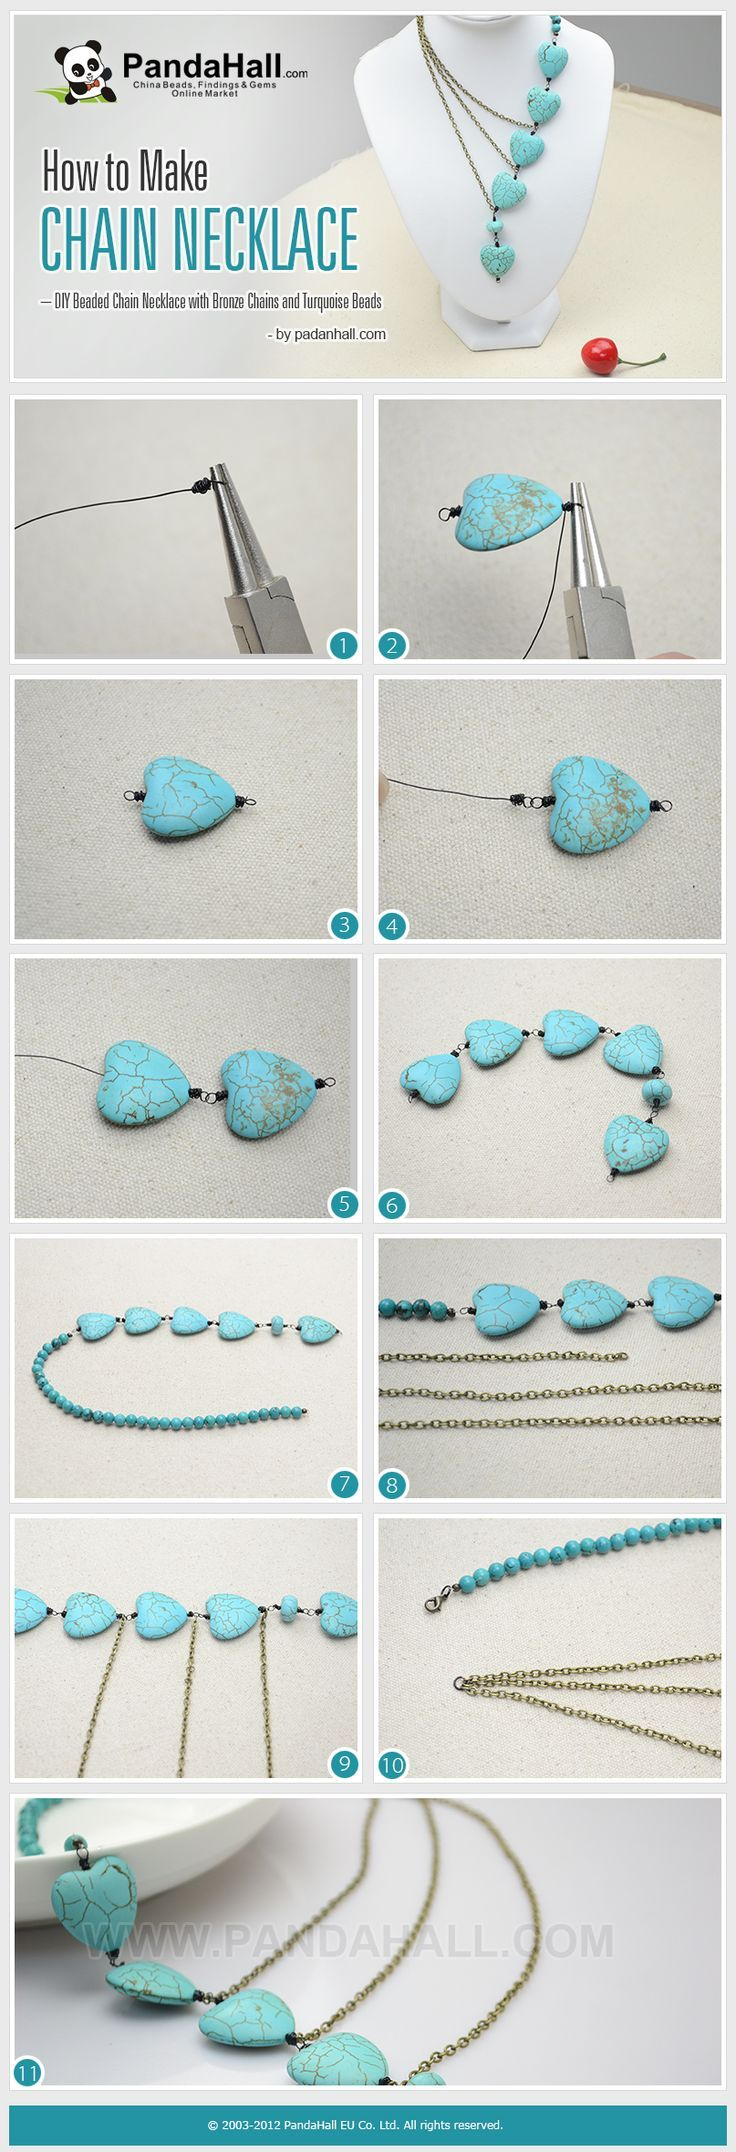 #DIY How to Make Chain Necklace - DIY Beaded Chain Necklace with Bronze Chains and Turquoise Beads